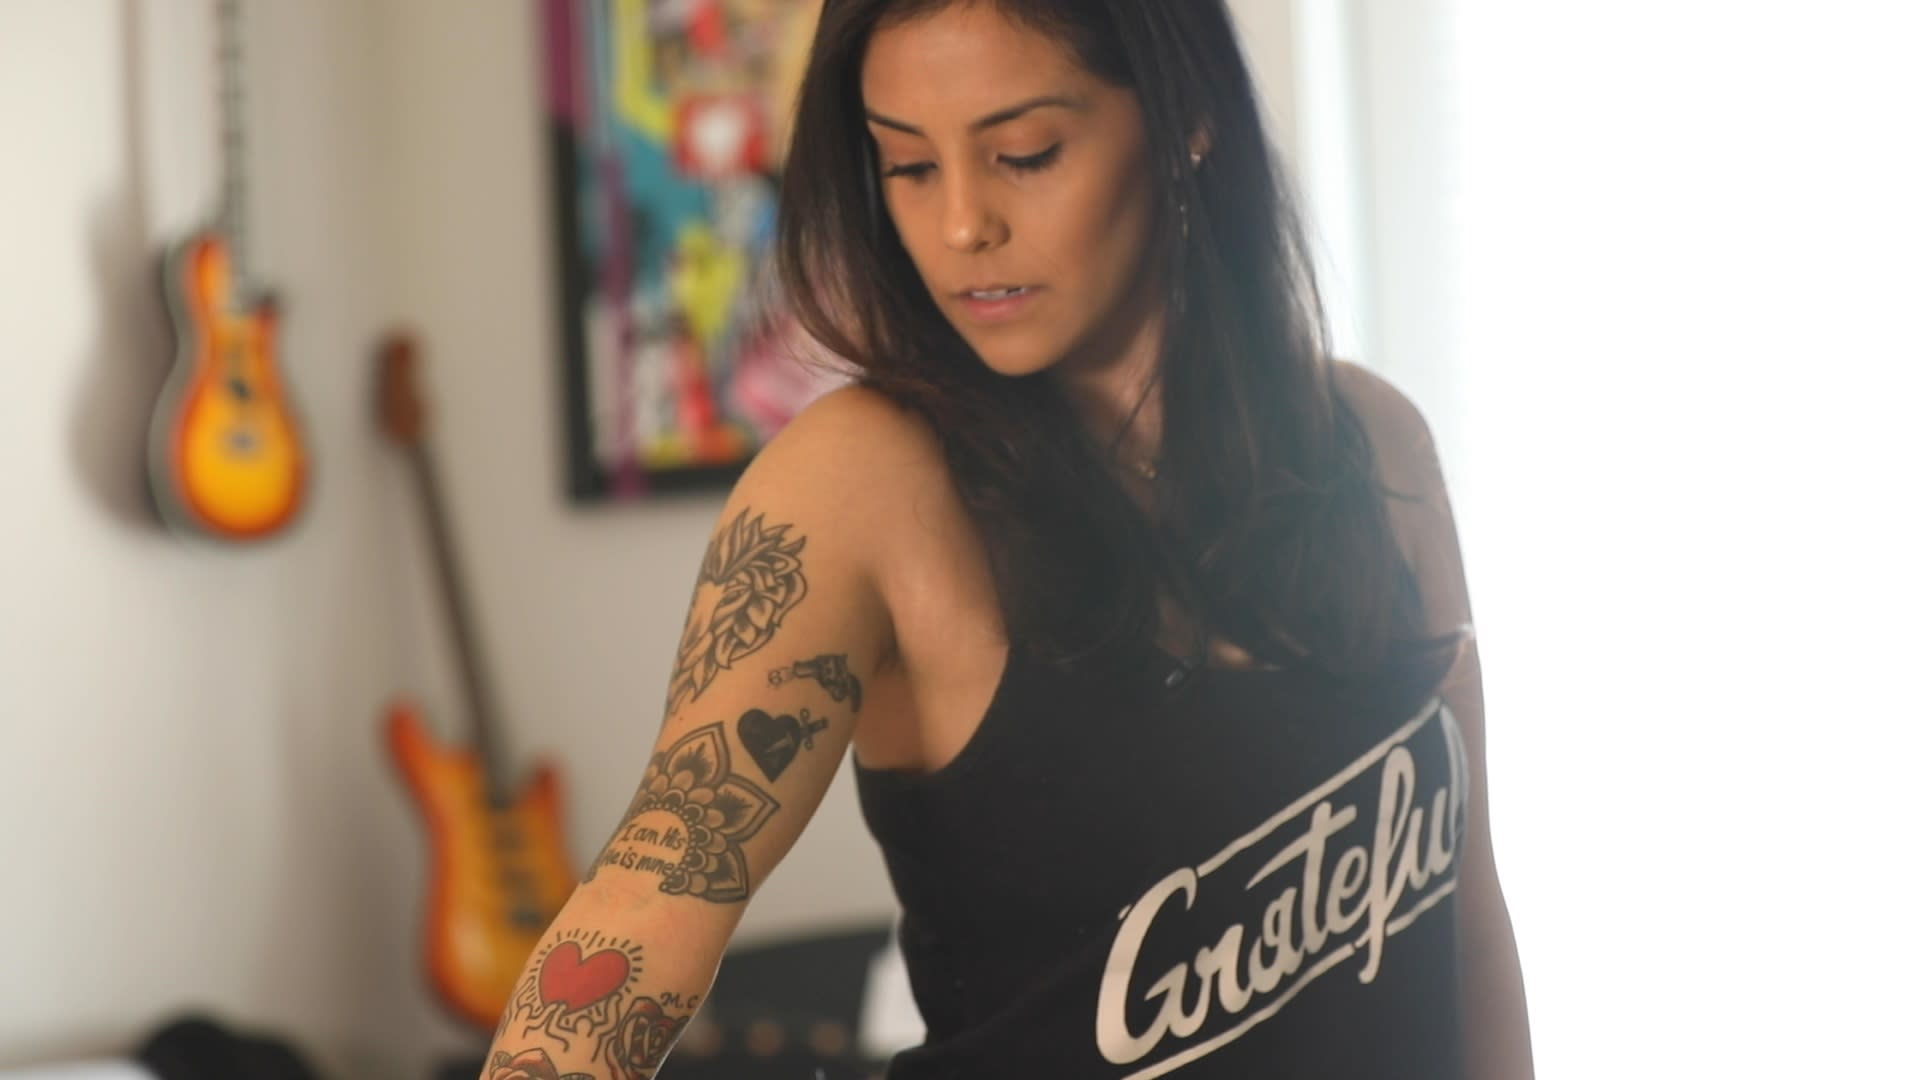 Andrea Contreras reflects on her tattoos in her apartment in Austin, Texas.